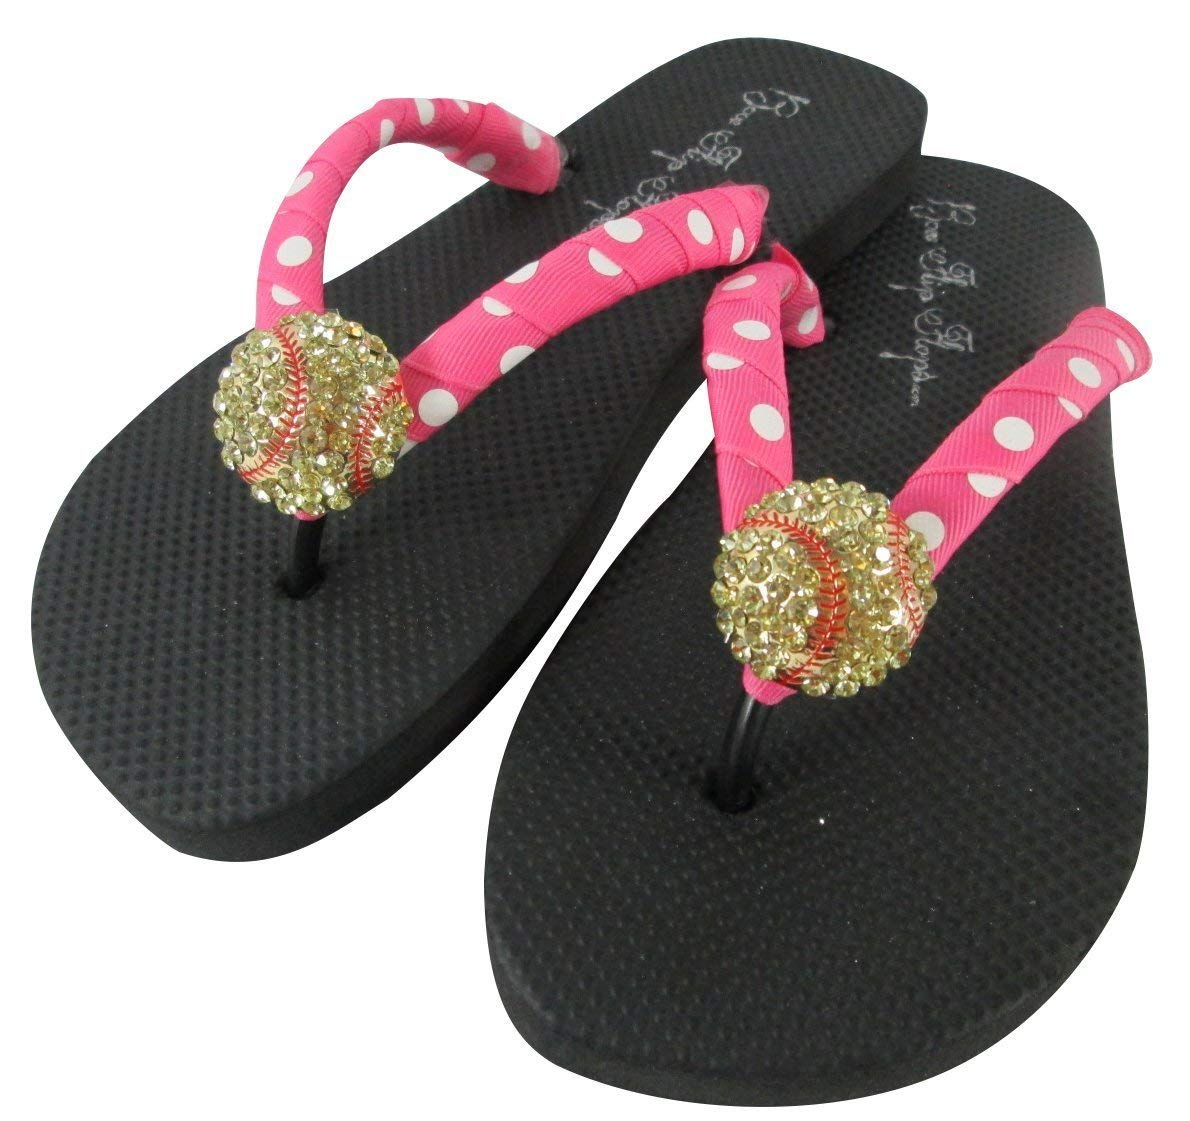 3aa273ea6c9f57 Get Quotations · Softball Flip Flops with Polka Dot Bling Rhinestone